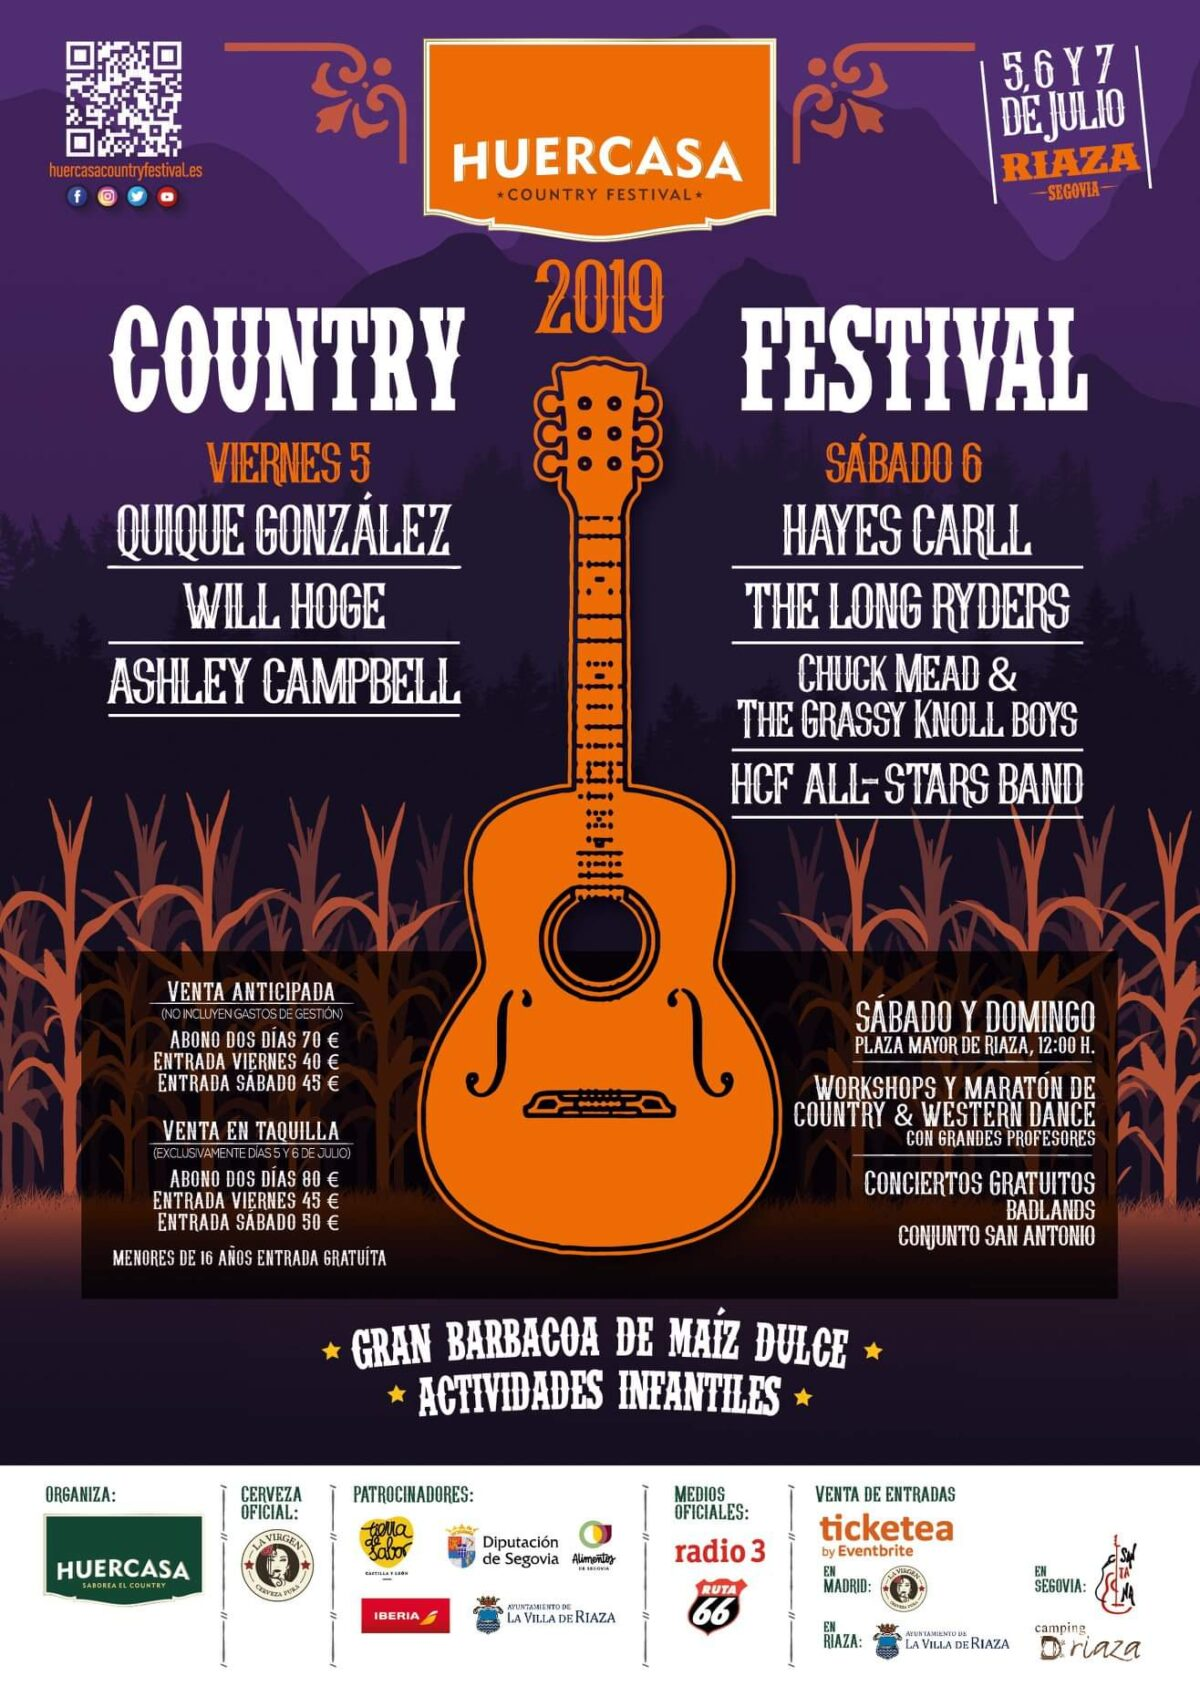 Huercasa Country Festival 2019.